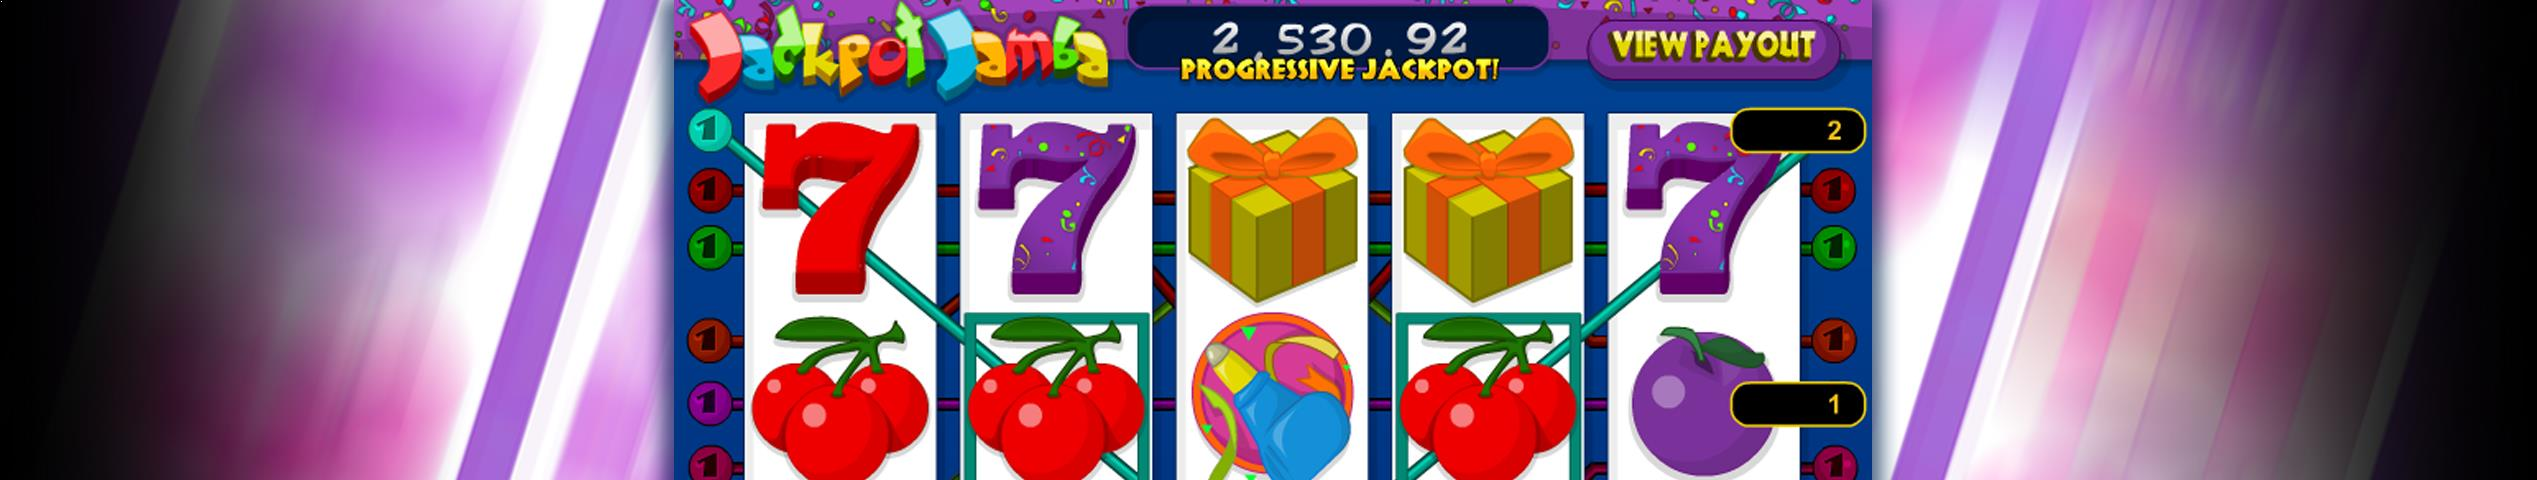 Jackpot Jamba Mini betsoft jocuri slot slider